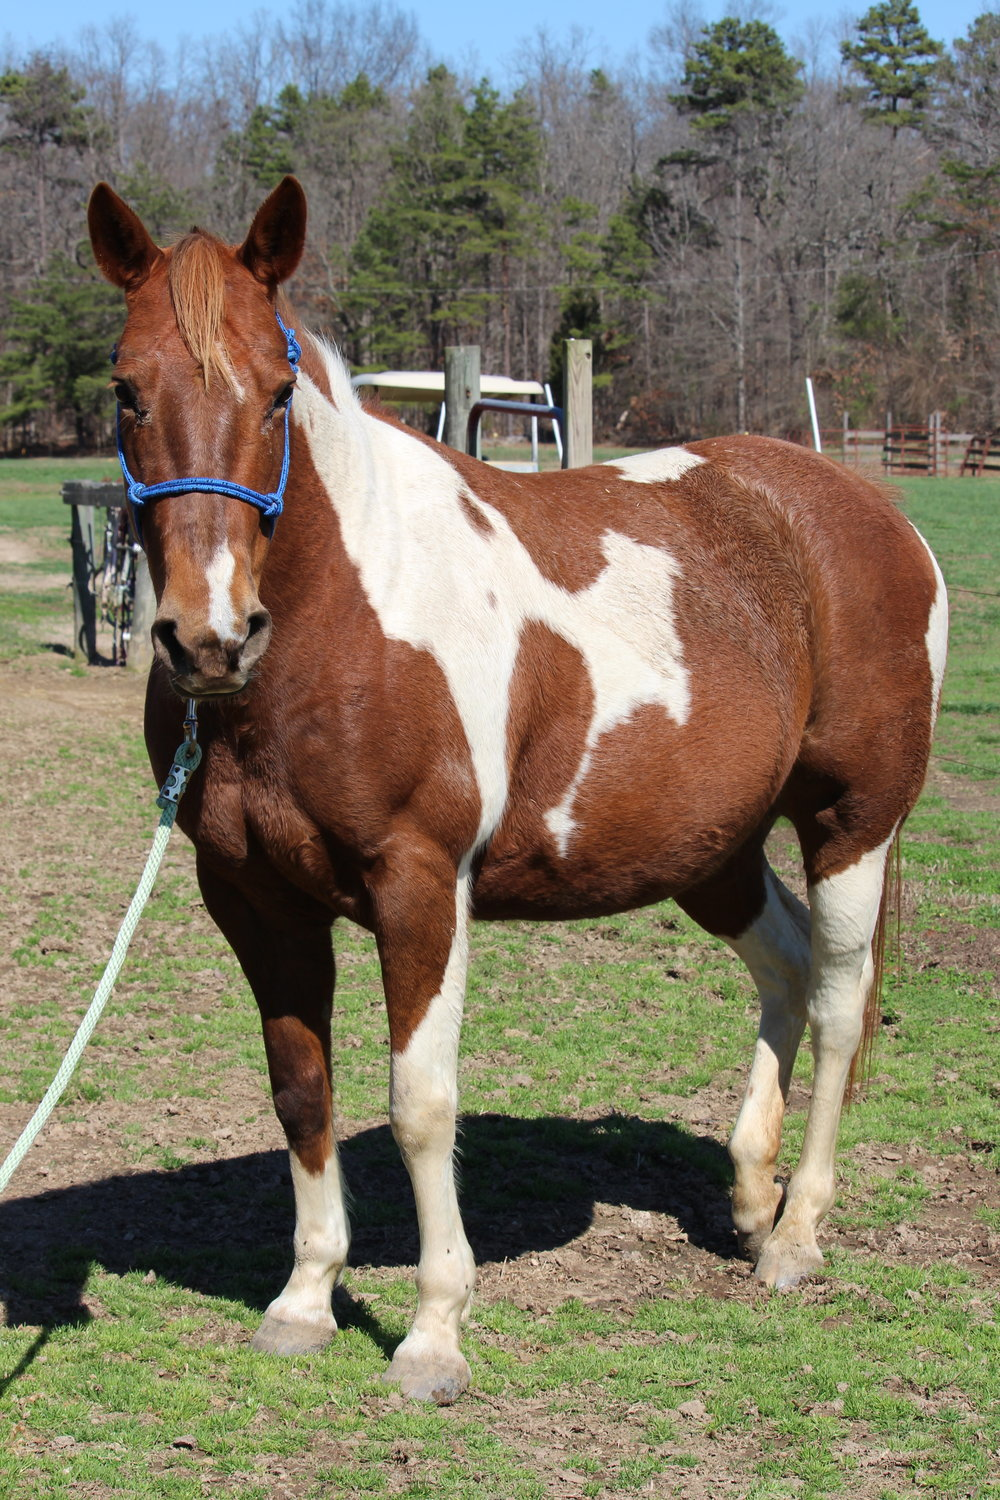 Kida is a Quarter Horse Paint born in 2008 and belongs to Ms. Claire. She has a sweet and playful personality, loves treats and kisses, and loves to be with her pasture-mates. She is currently not being used as a program horse, but is still being trained for general riding in hopes of one day being used in the program.